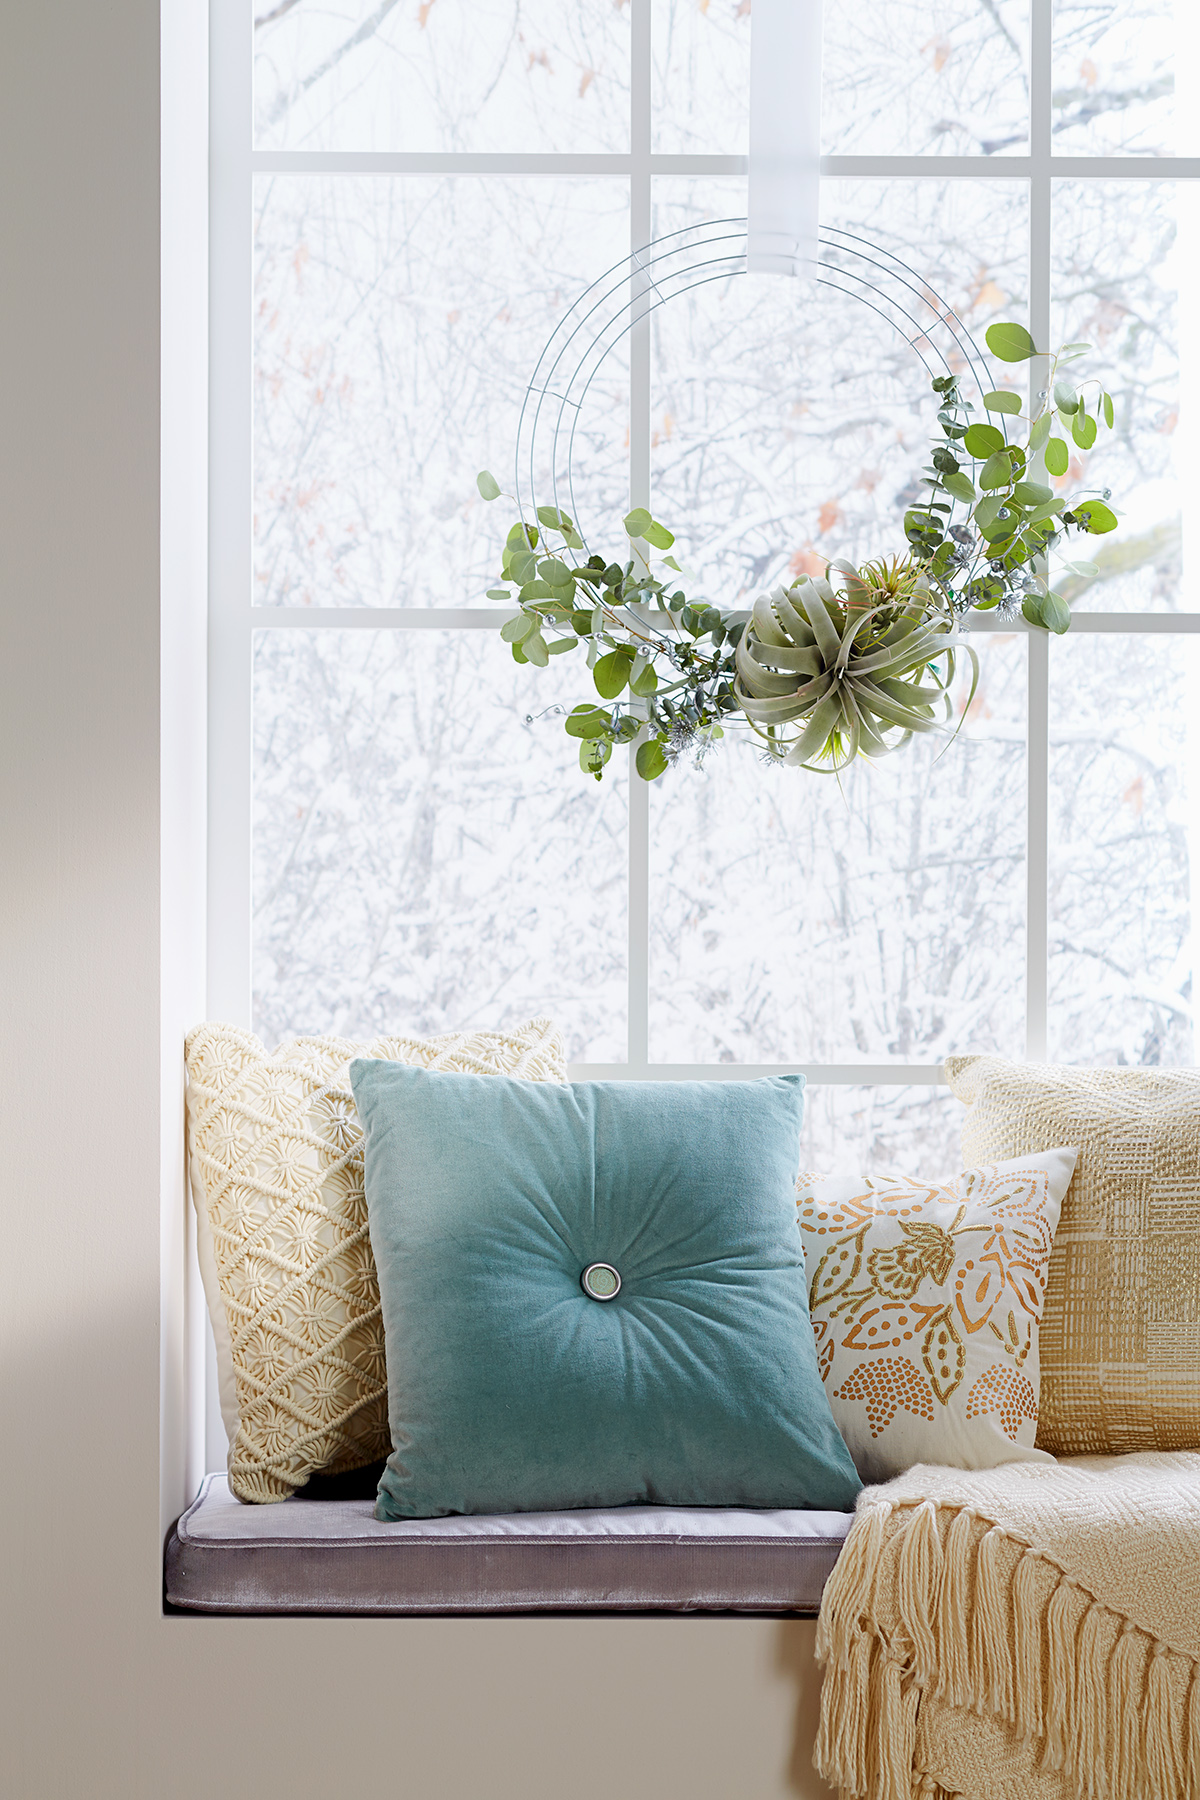 air plant wreath hung above window seat